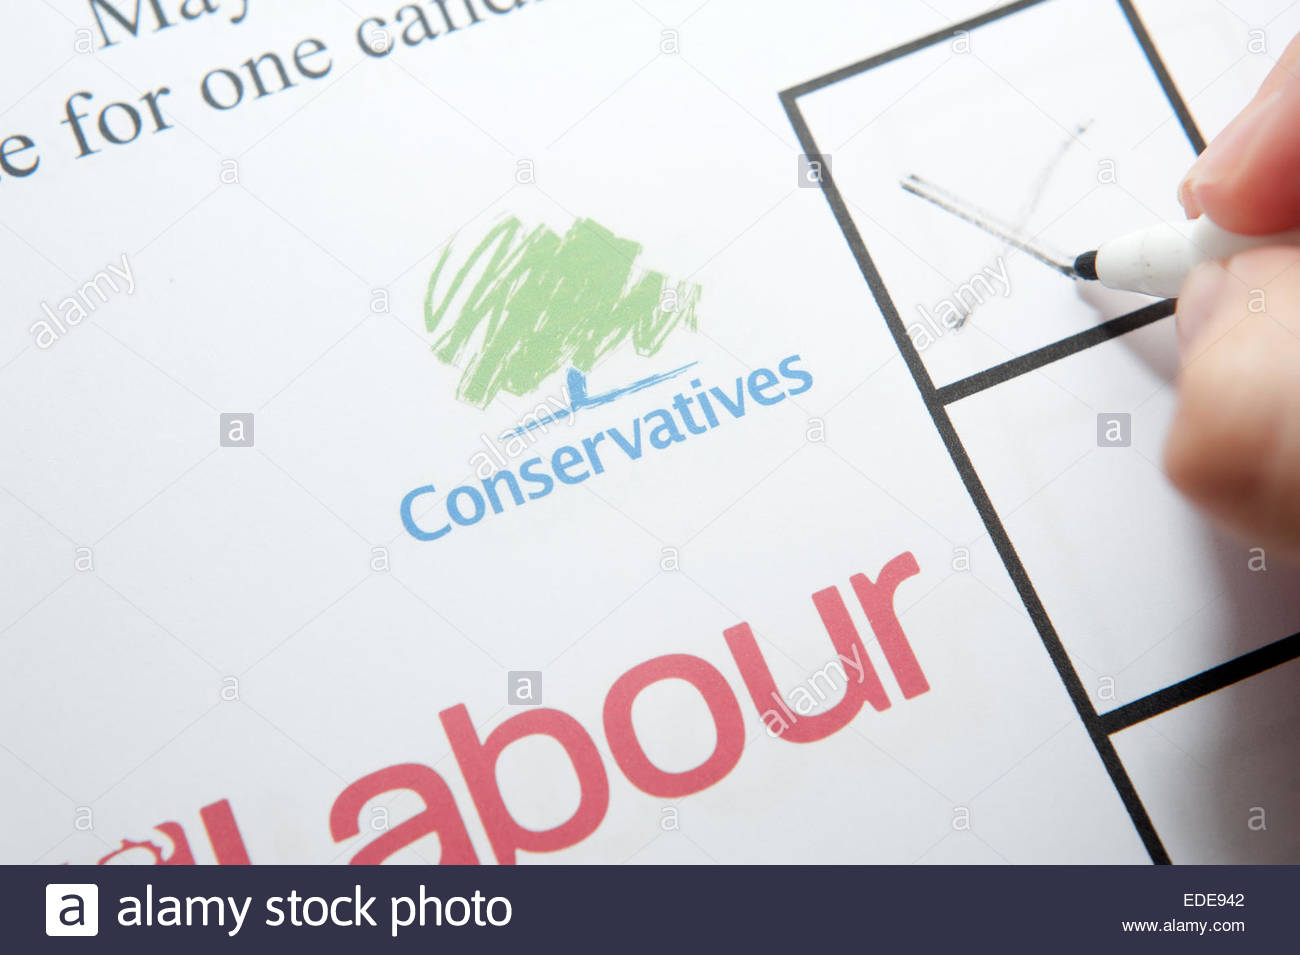 UK Elections ballot paper facsimile. Voting conservative party - Stock Image